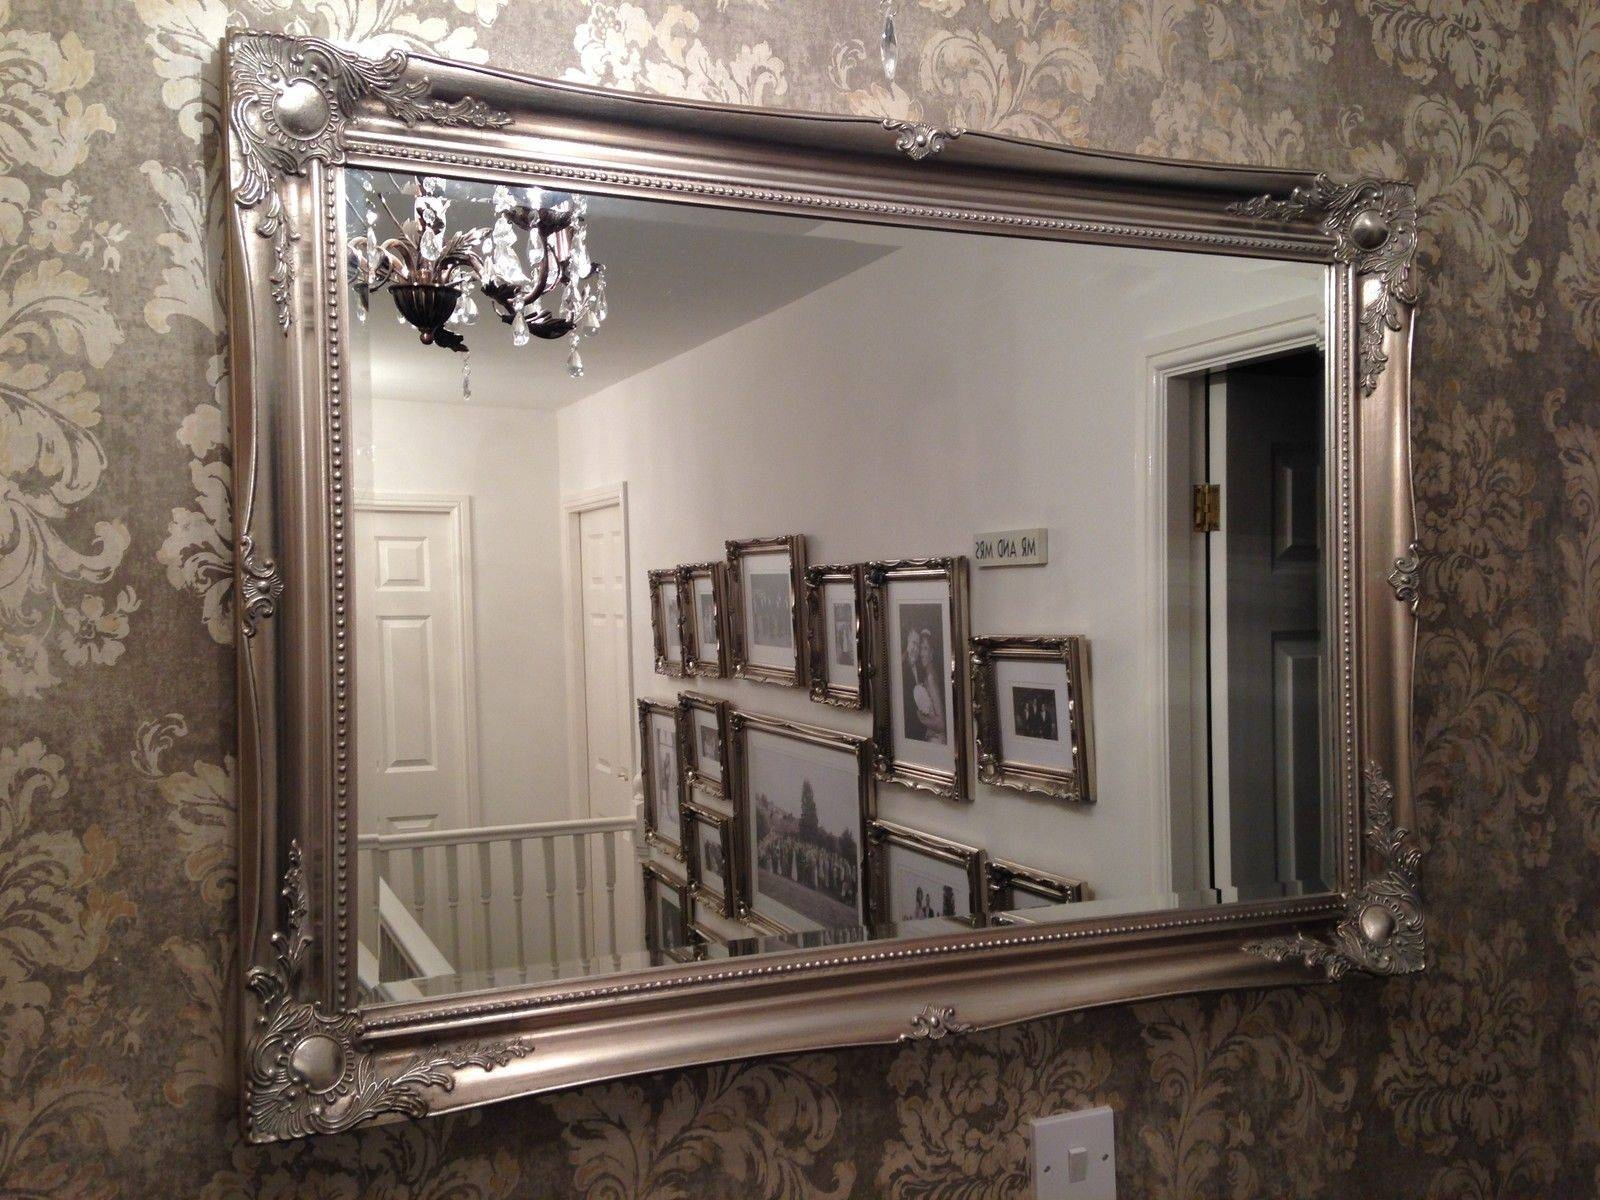 X Large Antique Silver Shabby Chic Ornate Decorative Wall Mirror for Large Ornate Wall Mirrors (Image 15 of 15)